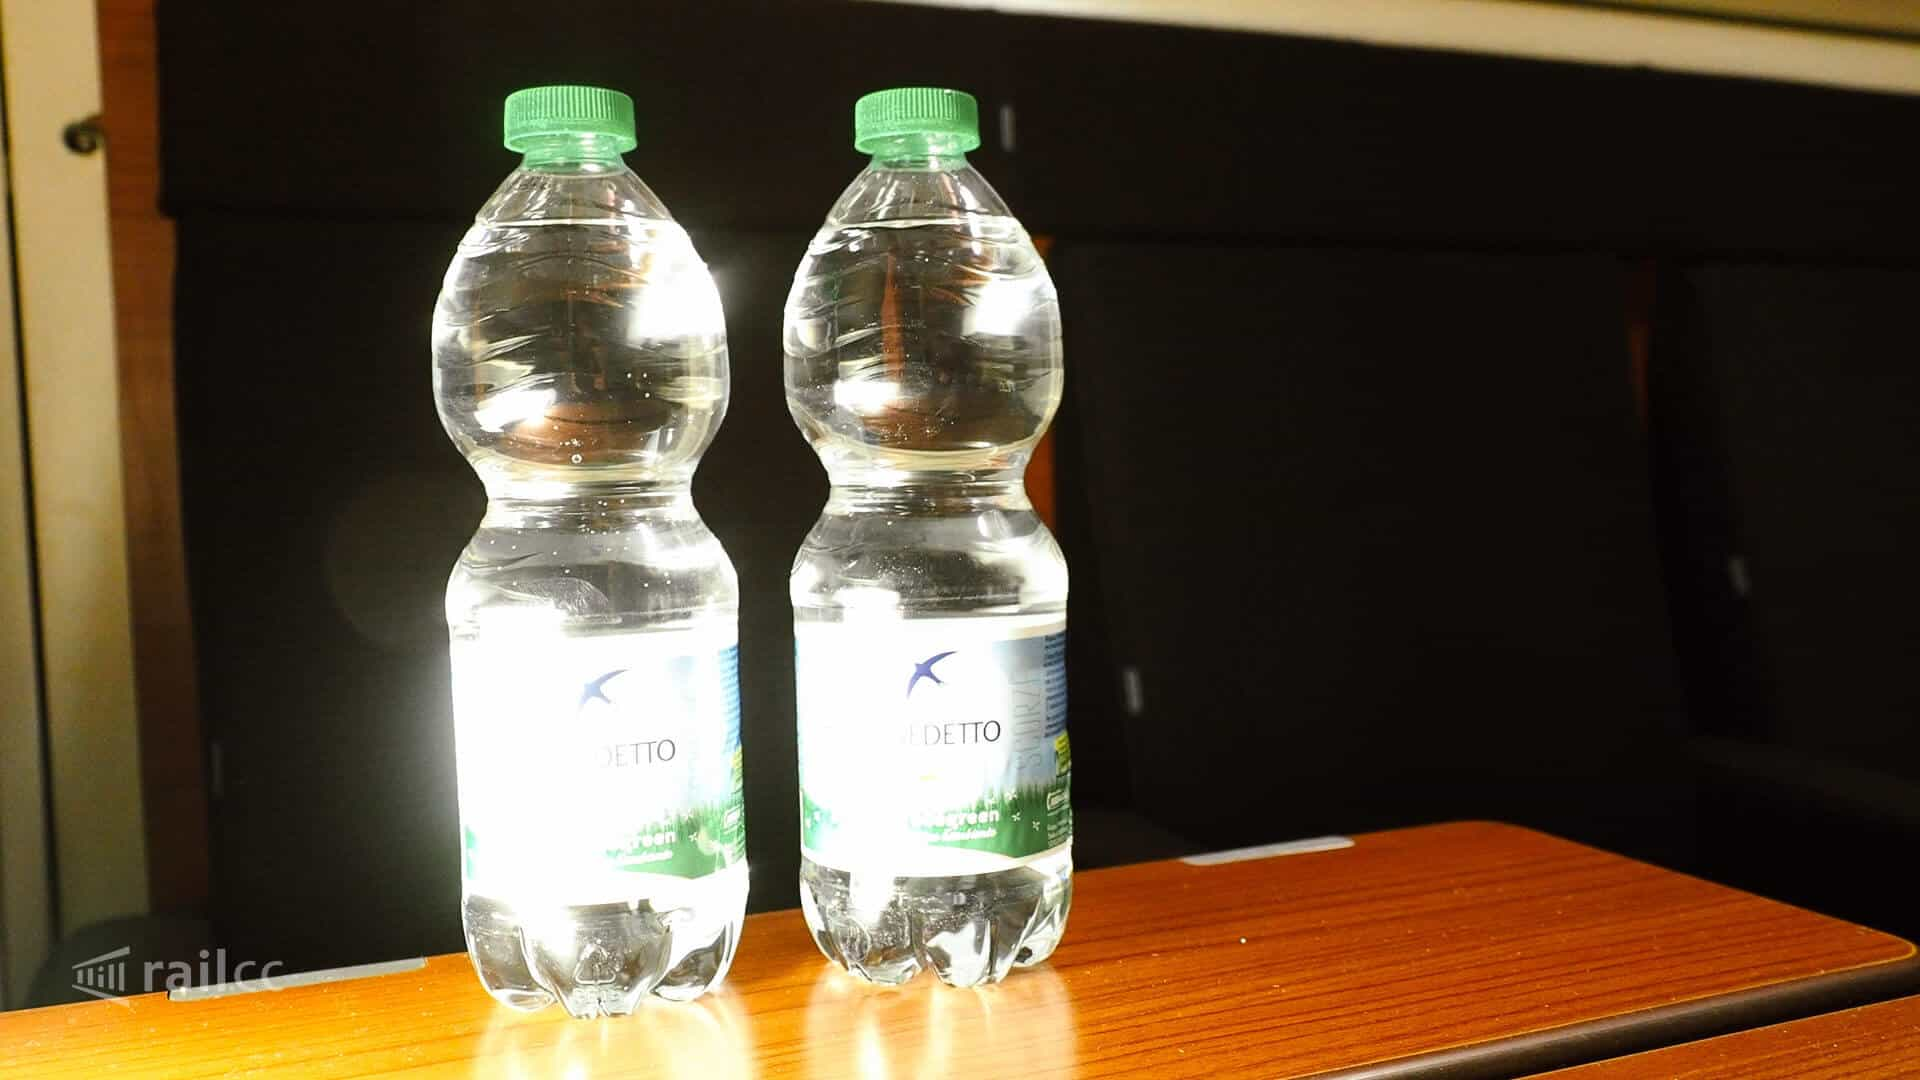 Thello: two bottles of water you get for free in a Thello sleeper compartment.